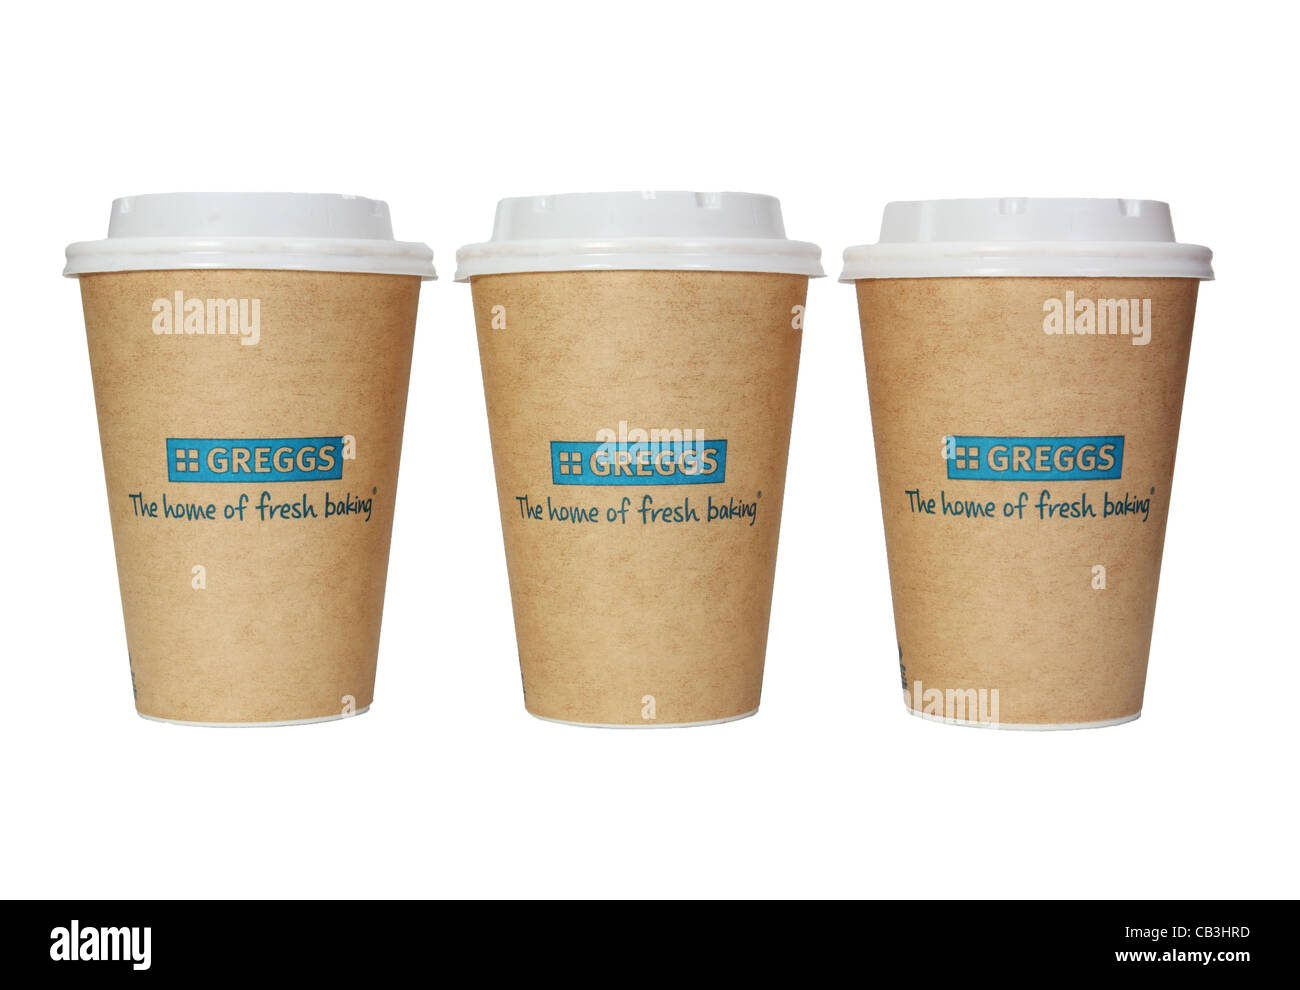 Greggs the bakers row of three paper cups or mugs or beakers with plastic lids, England UK  isolated on white background - Stock Image